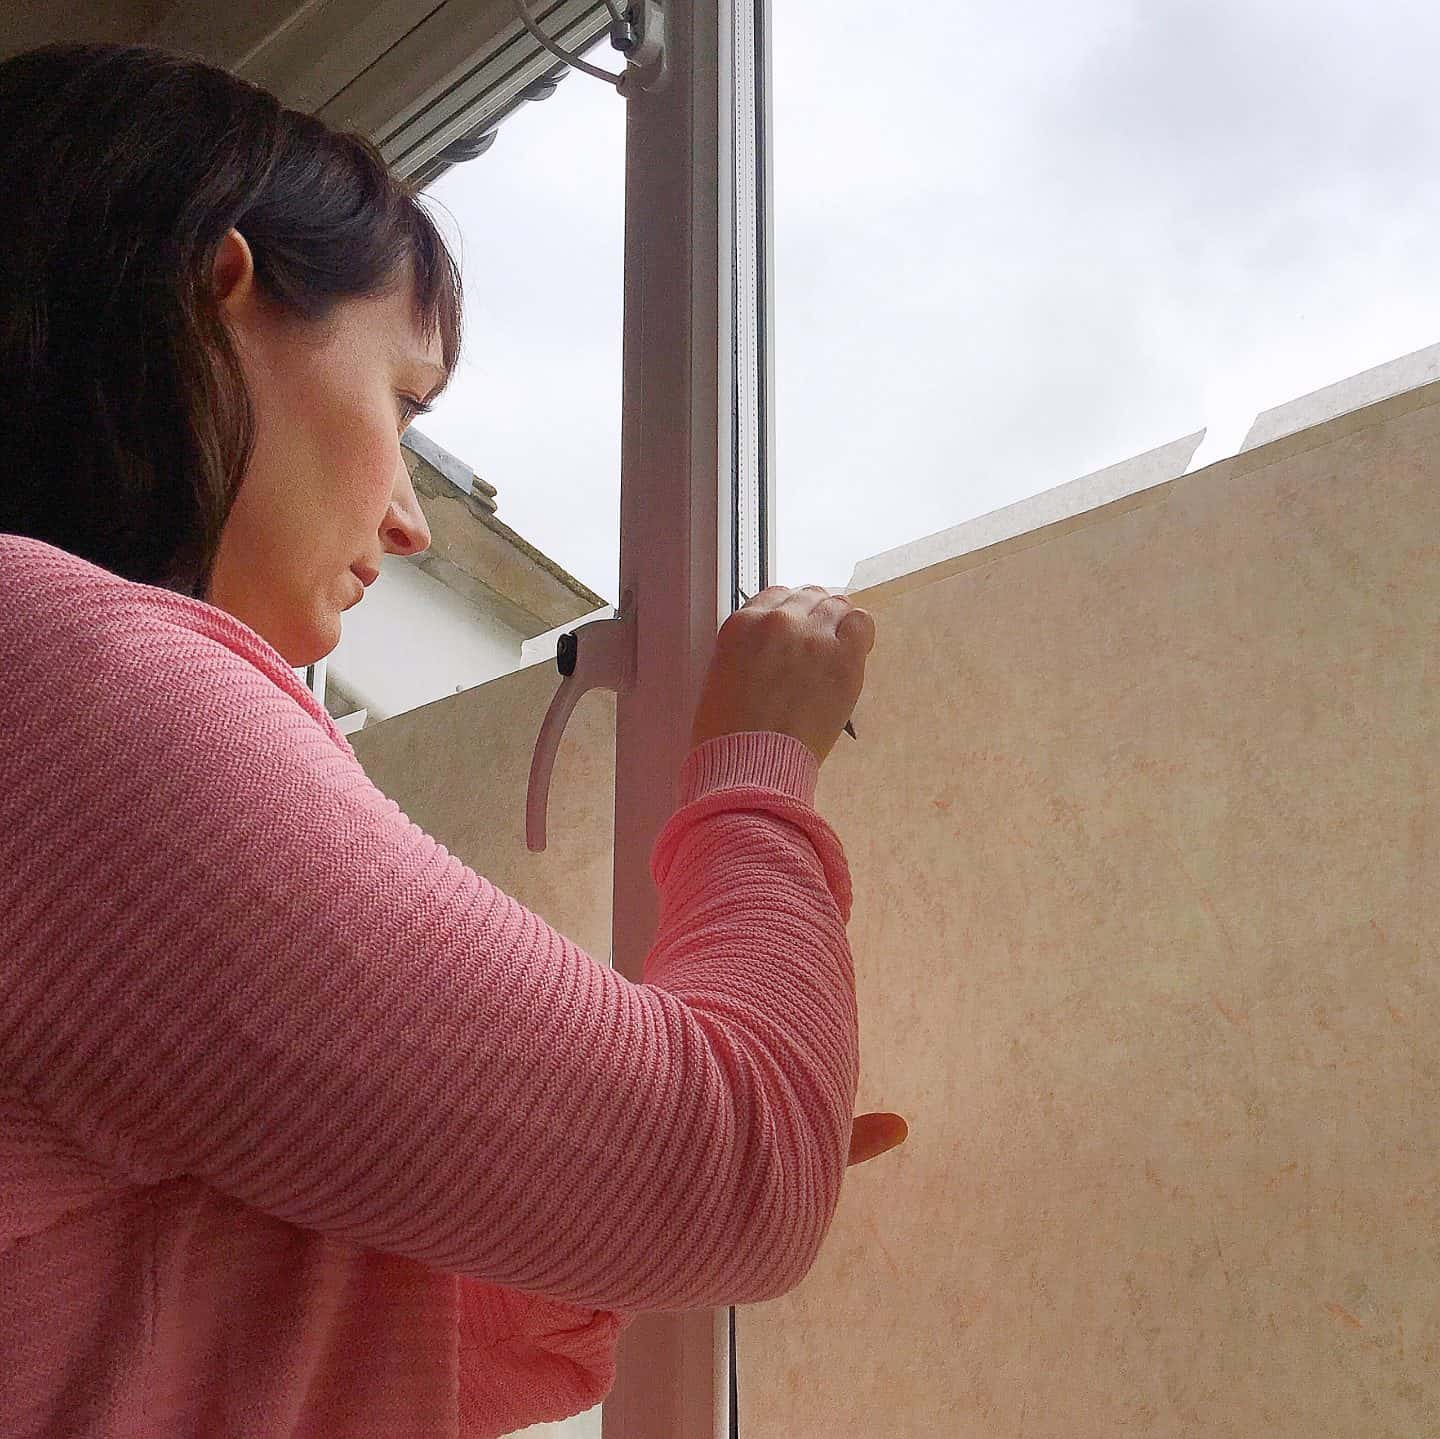 Smoothing over the window film with a squeegee